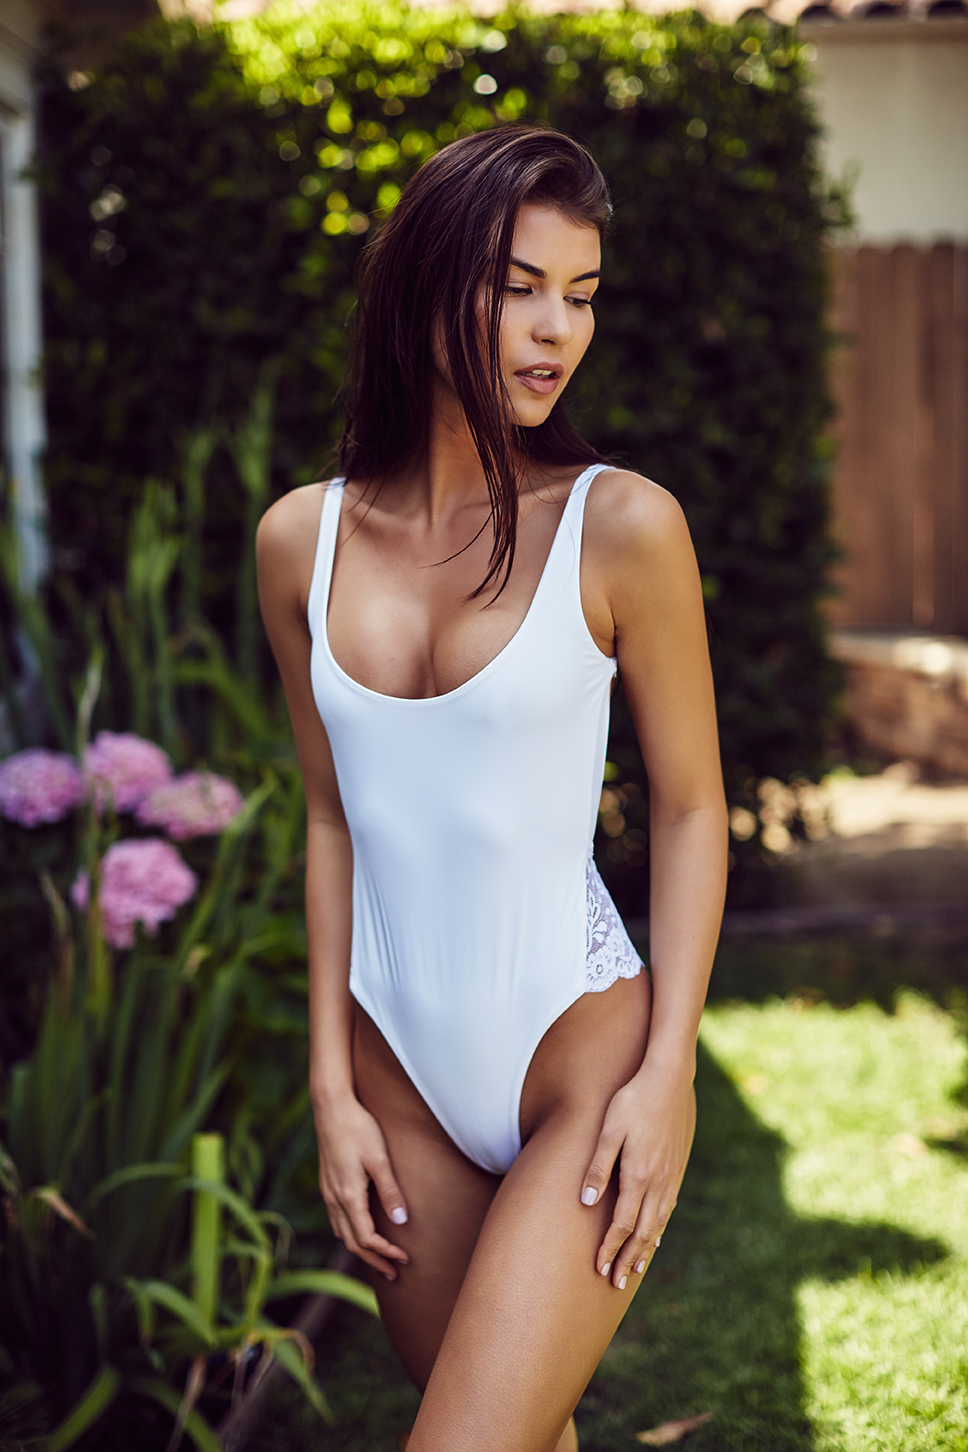 cleavage Images Brittani Bader naked photo 2017